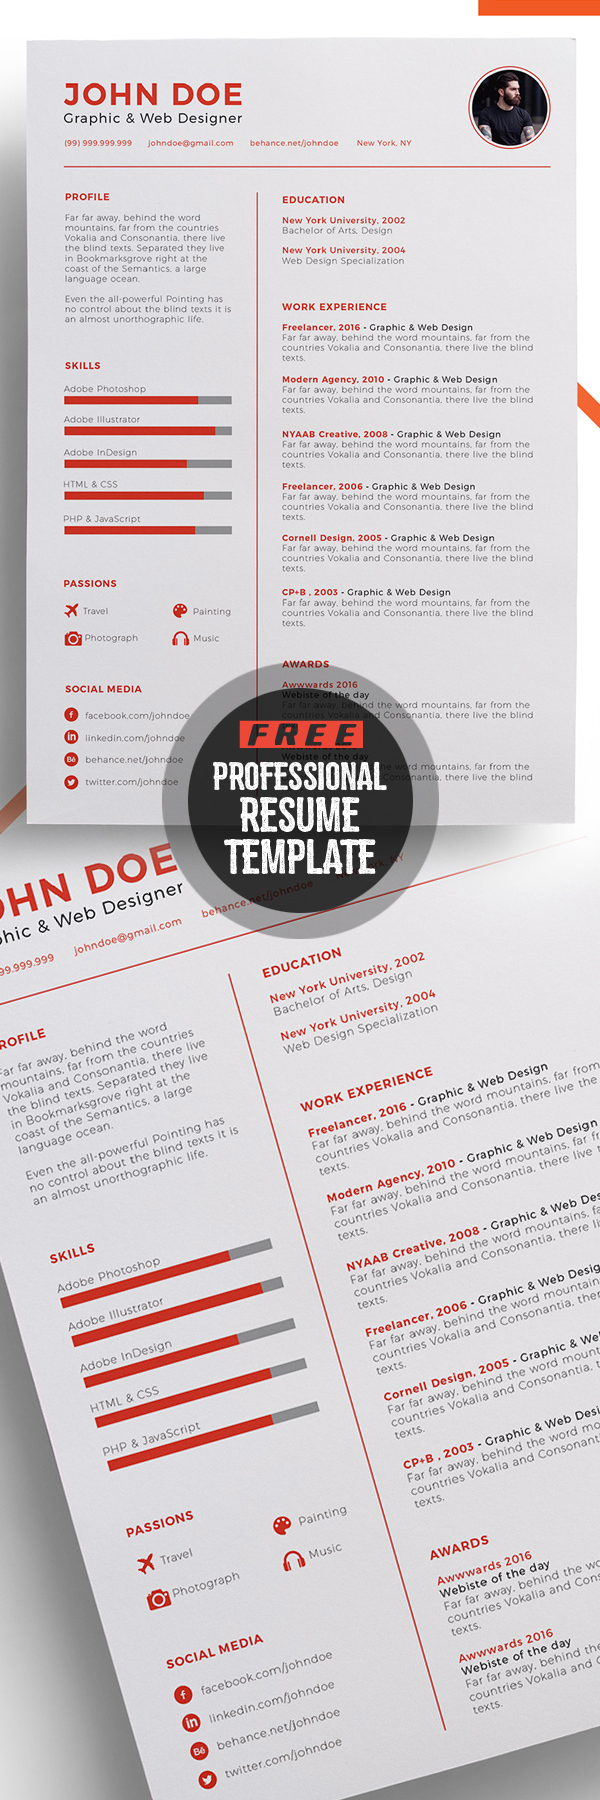 Professional Free Resume Template Design  Portfolio Word Template